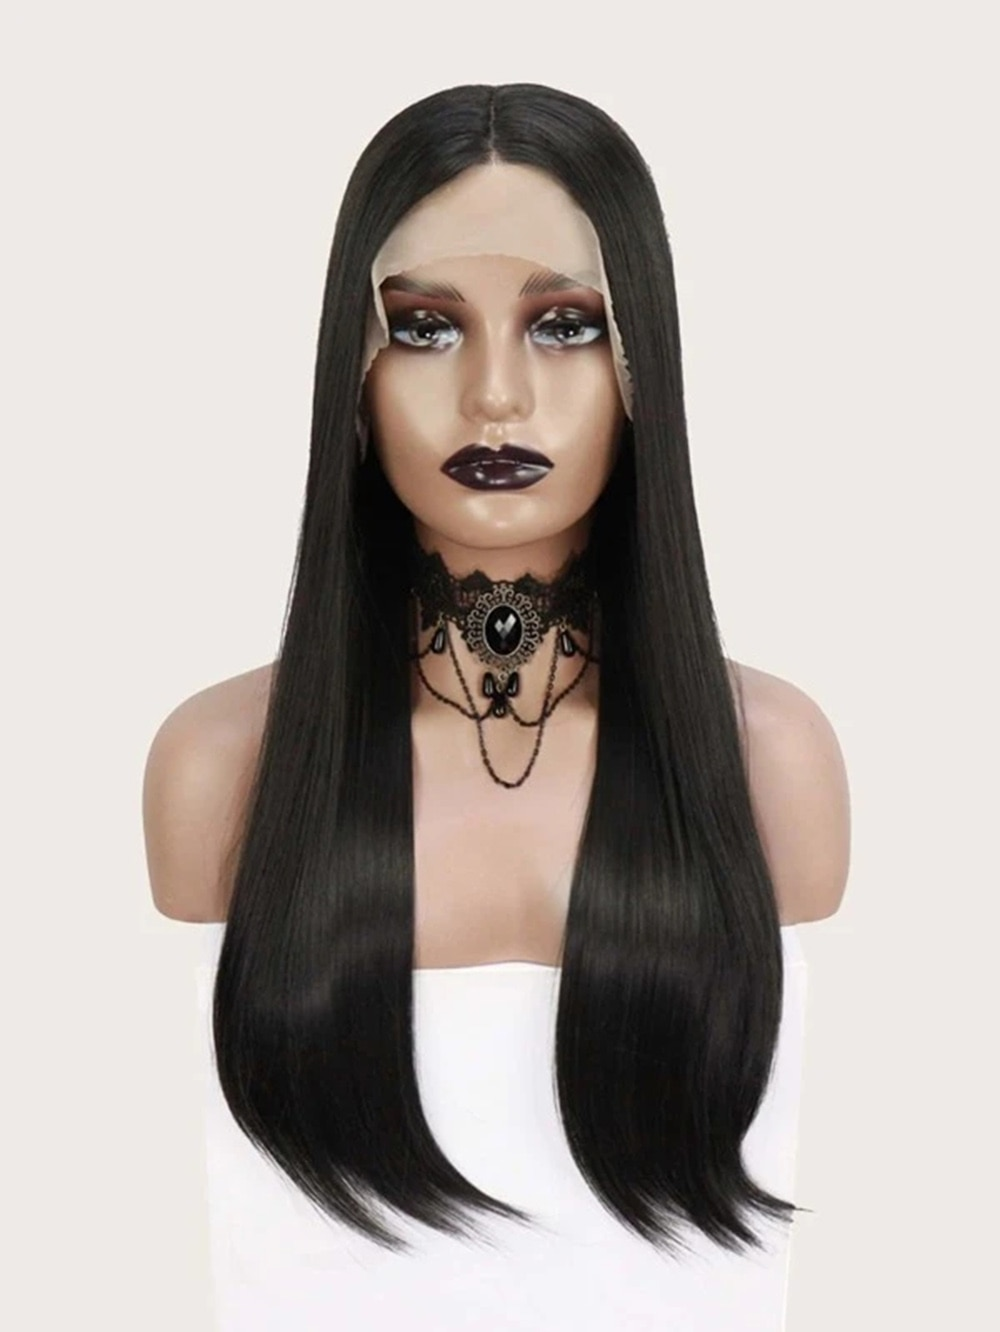 simulation Remy Human Hair Lace Front Wig Long Straight Black Wig for women 22 inch